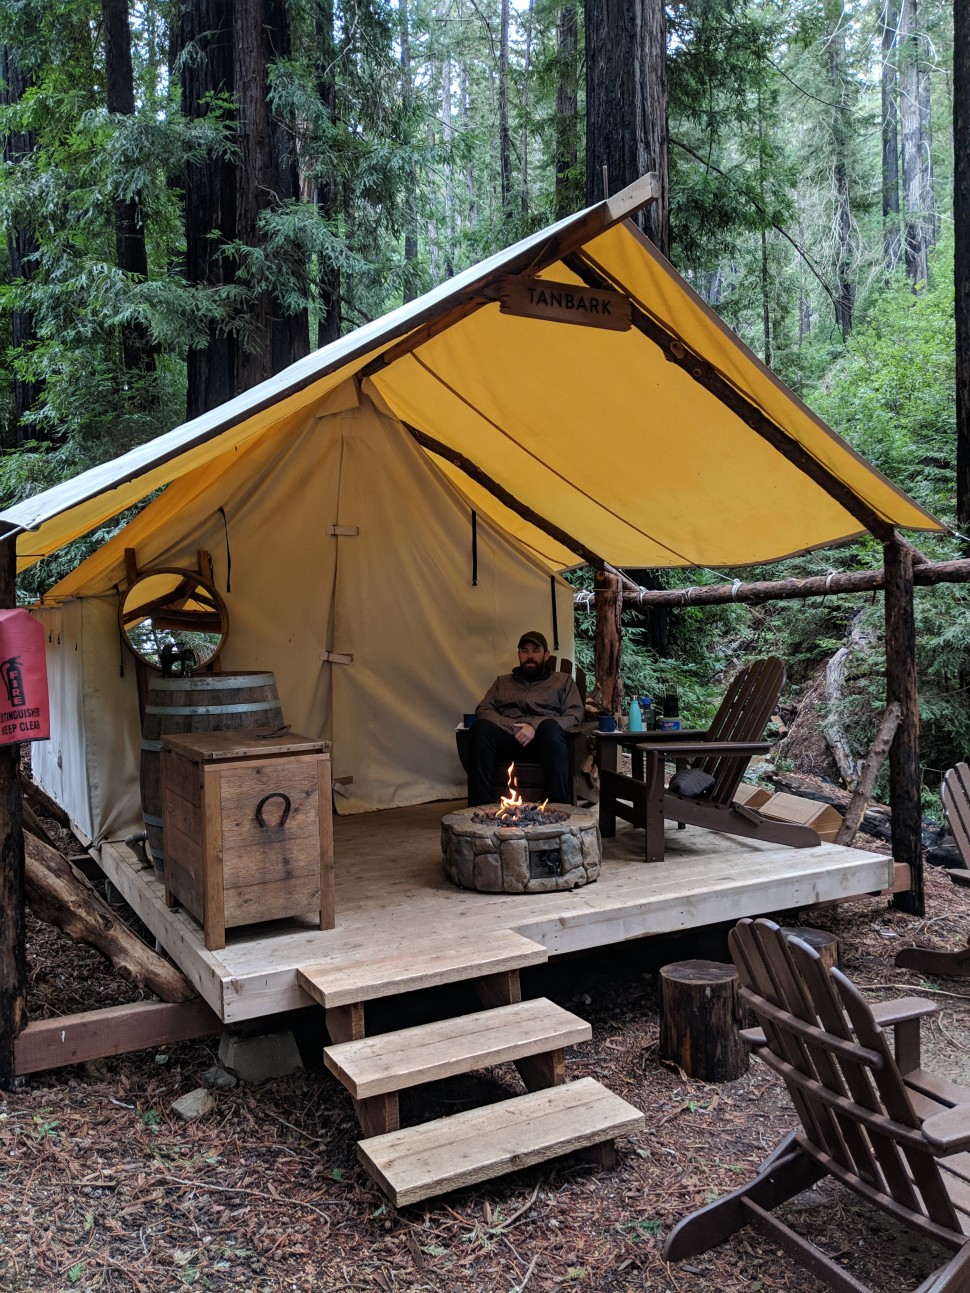 Tanbark G7 Glamping at Ventana Big Sur